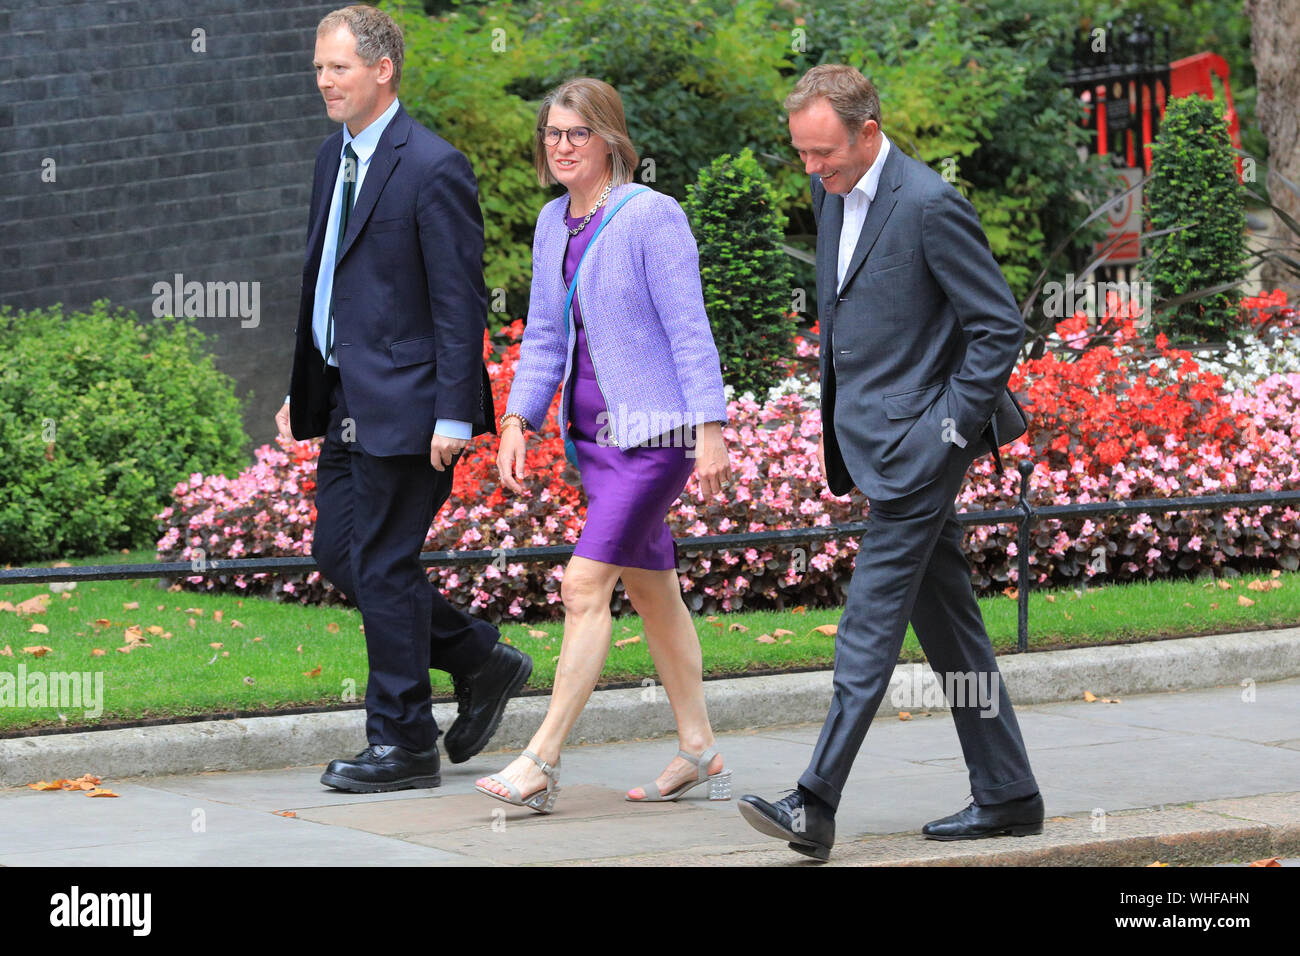 London, UK, 2nd Sep 2019. Cabinet Ministers, as well as many Conservative Party MPs and former politicians all enter No 10 Downing Street for an Emergency Cabinet Meeting, and later general Conservative Party gathering. Credit: Imageplotter/Alamy Live News Stock Photo